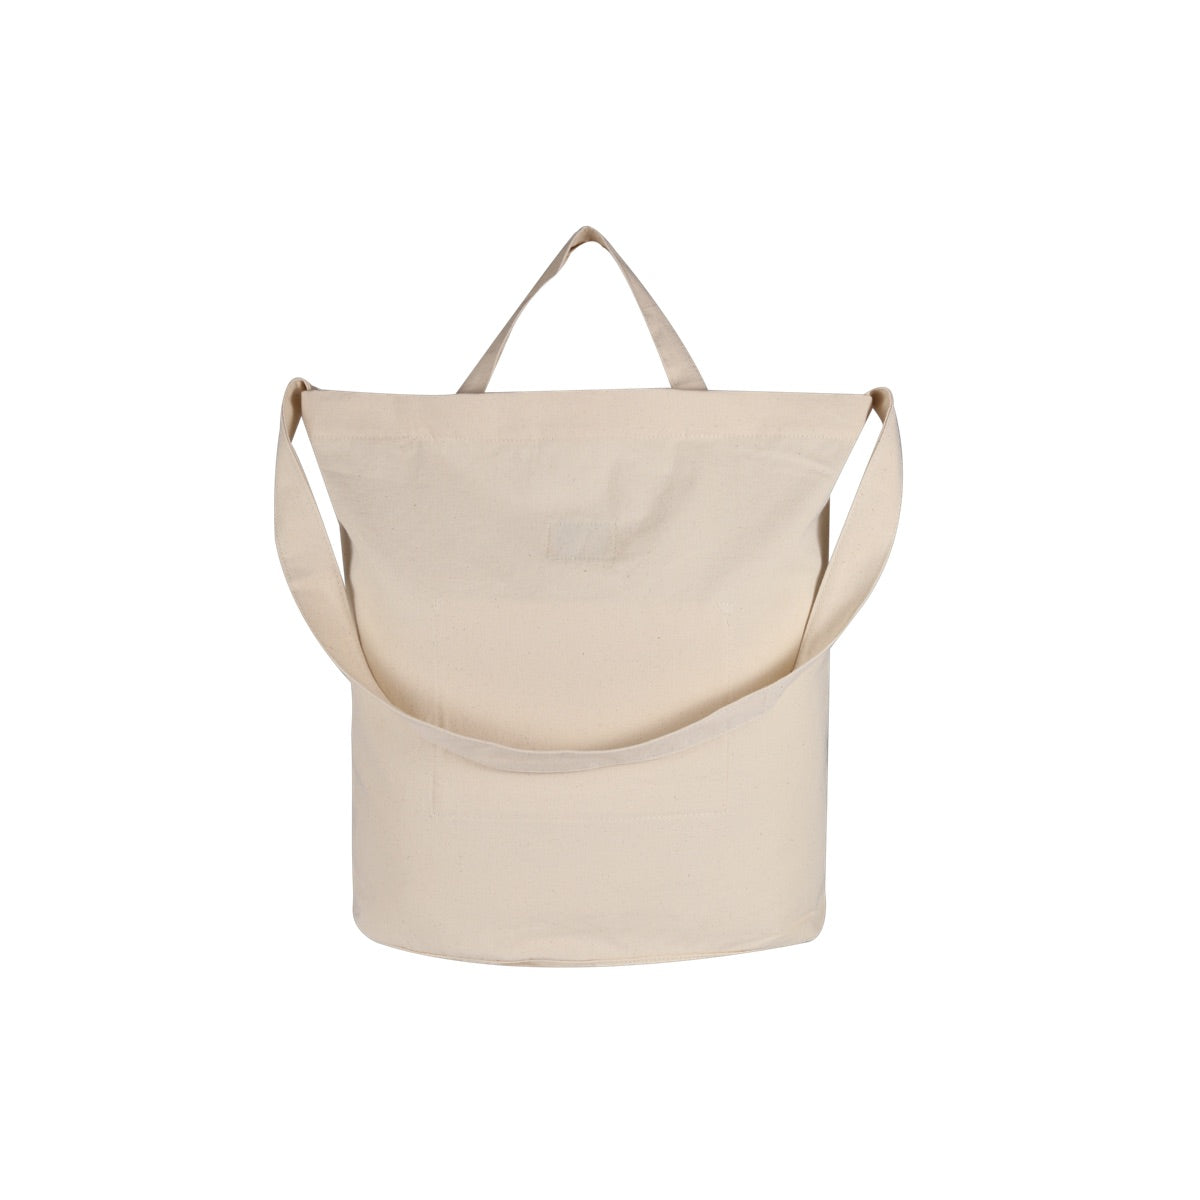 Made To Roam Tote - Natural image 4